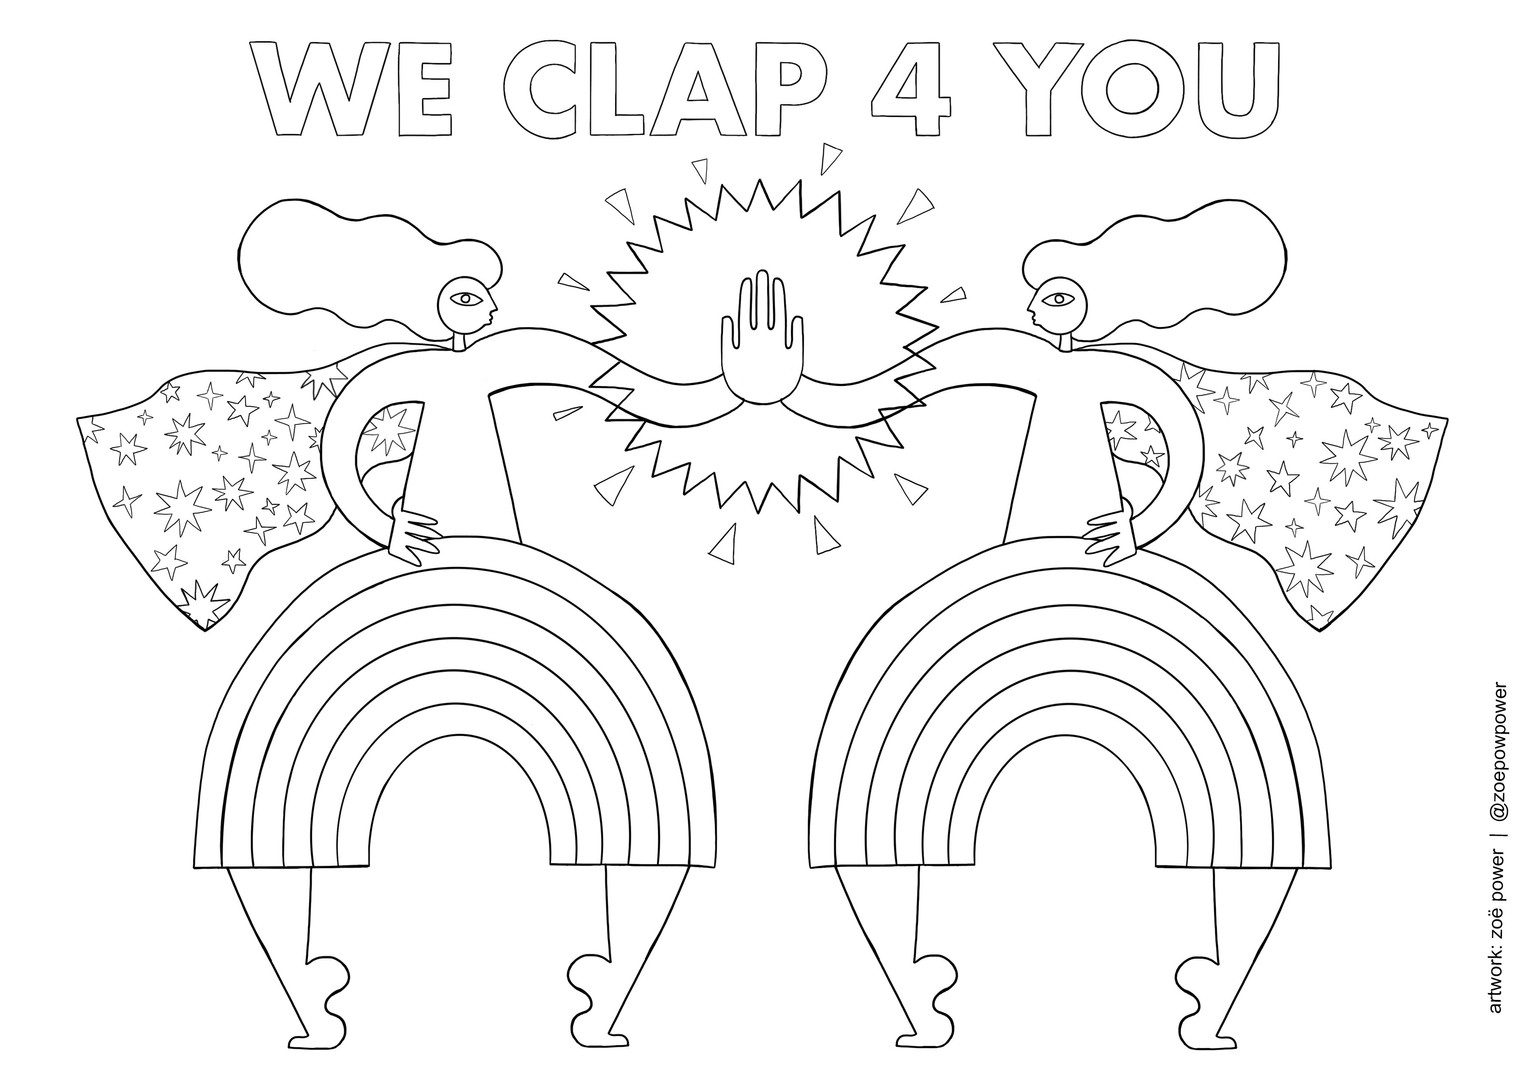 Colouring In sheet - WE CLAP 4 YOU